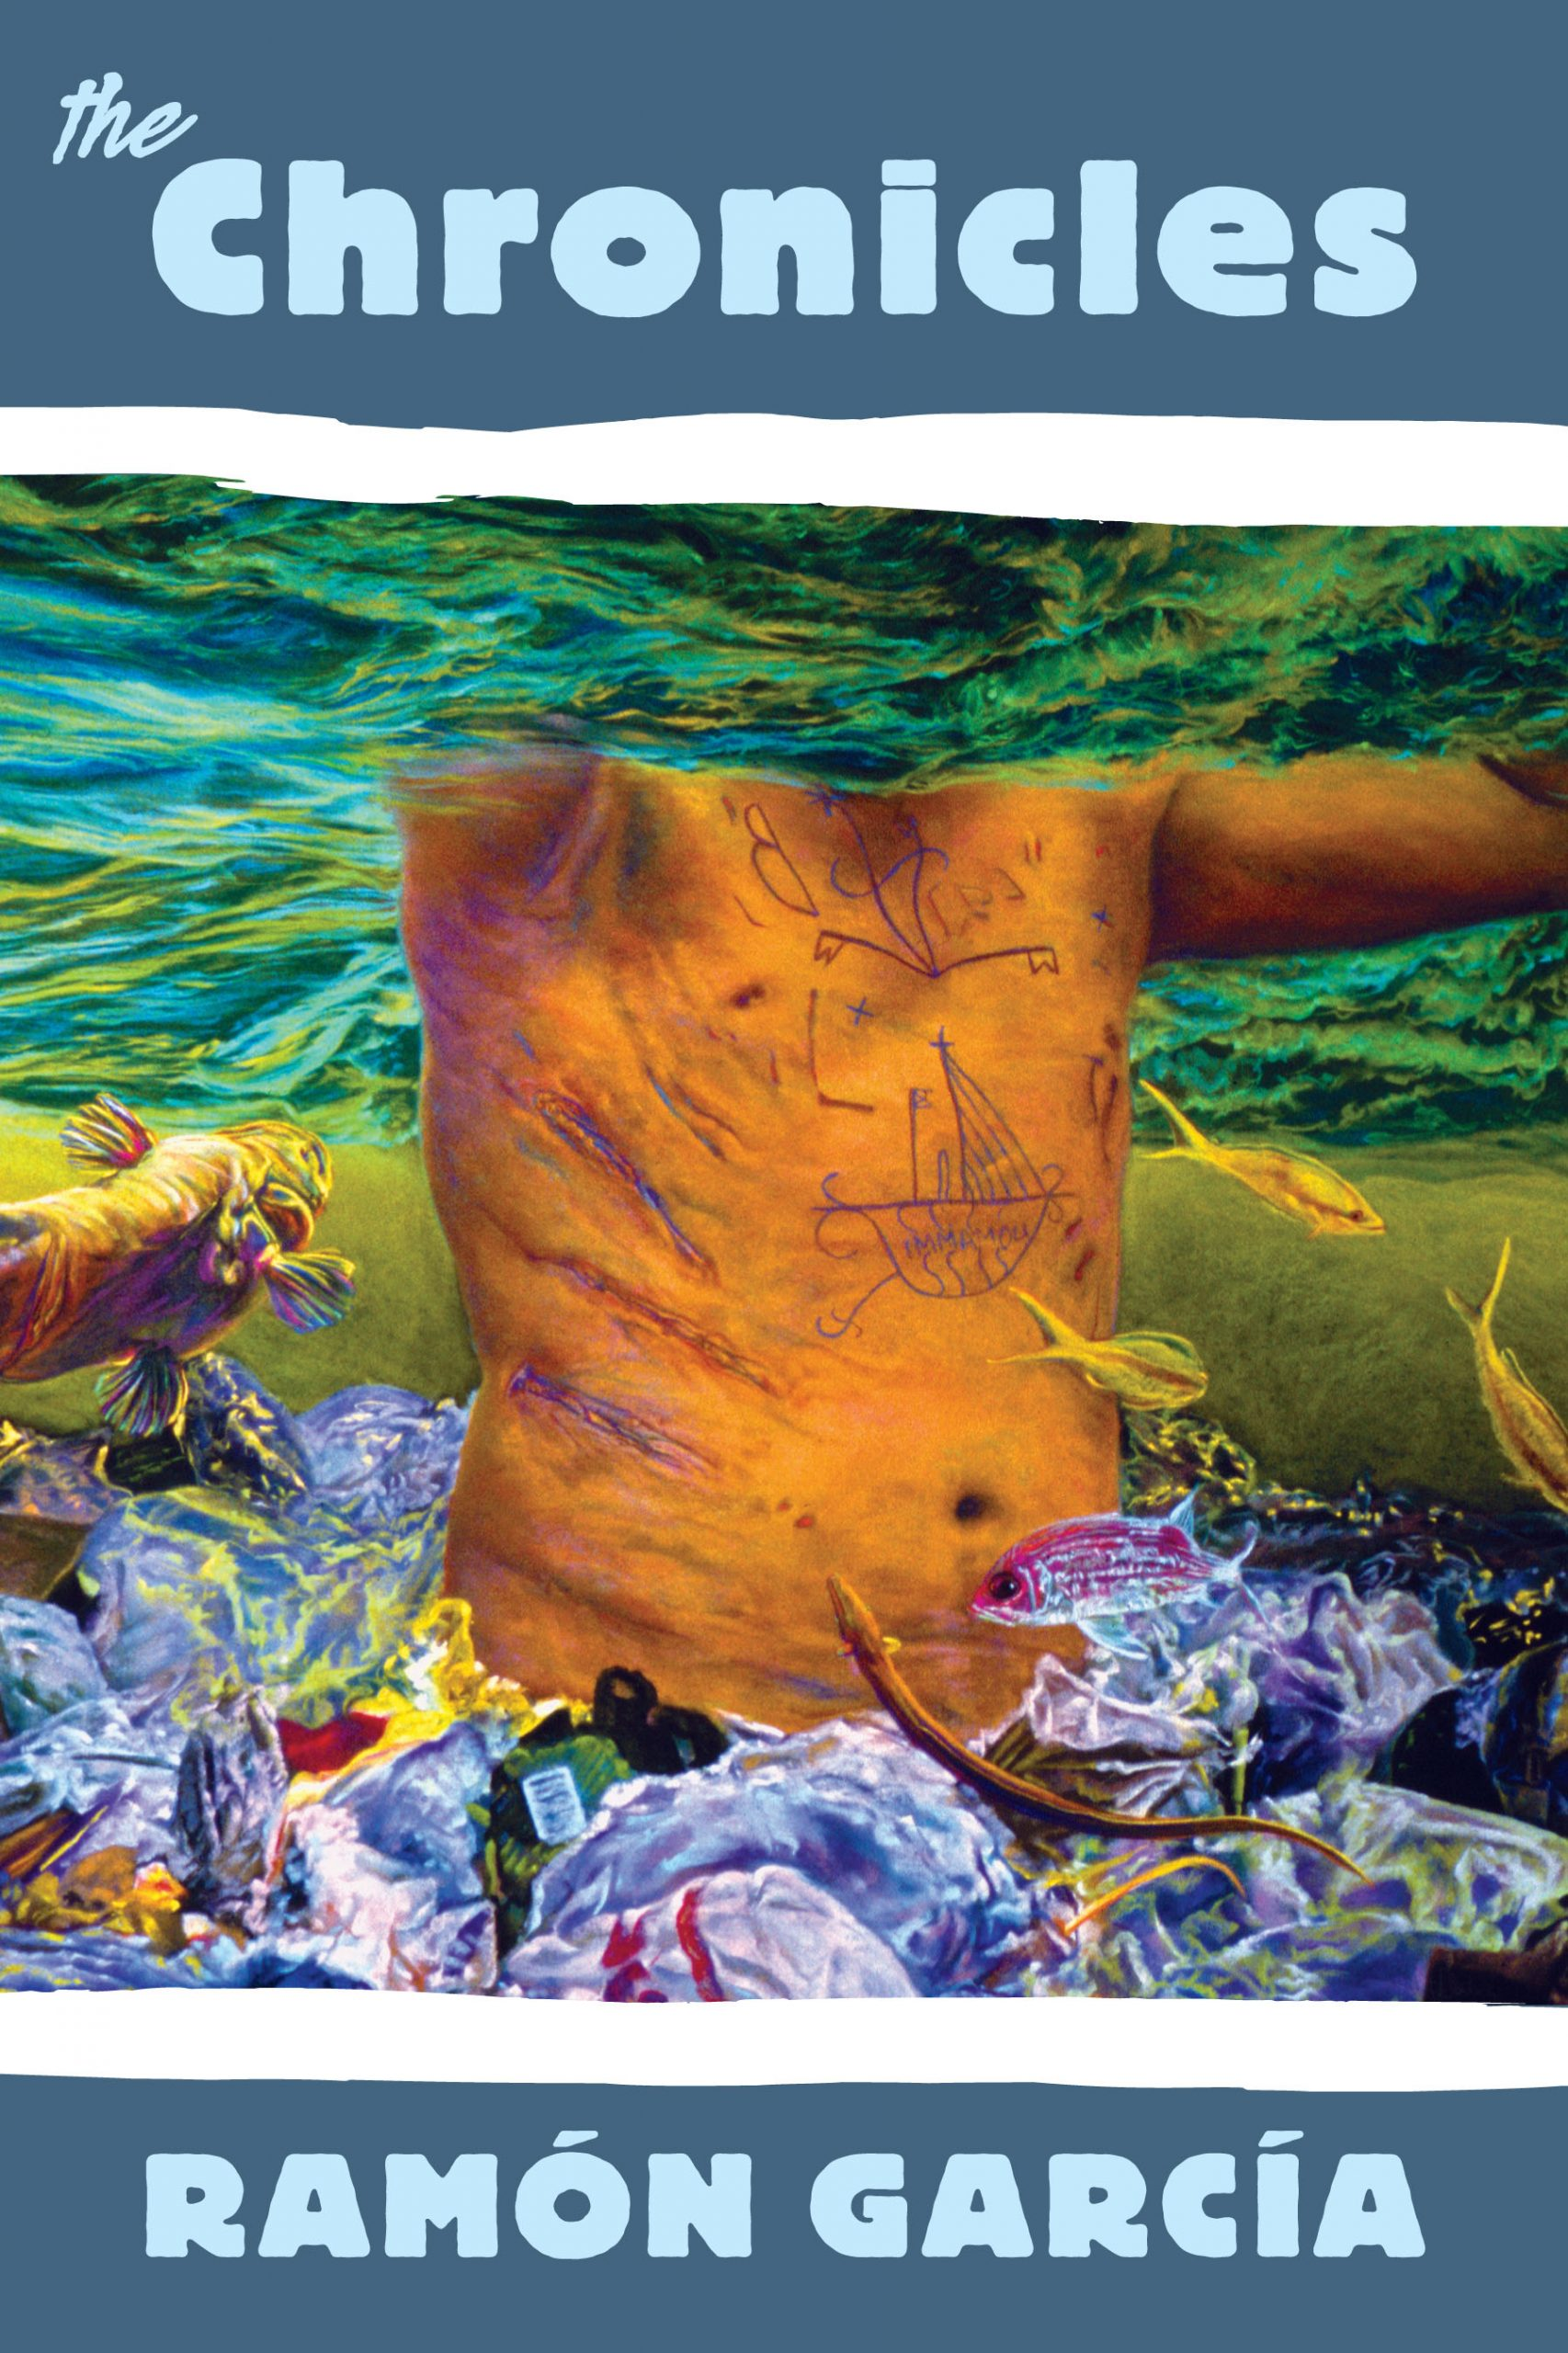 """An image of a bare chest underwater with tattoos, images of coral and fish, blue text reads """"The Chronicles Ramón García"""""""